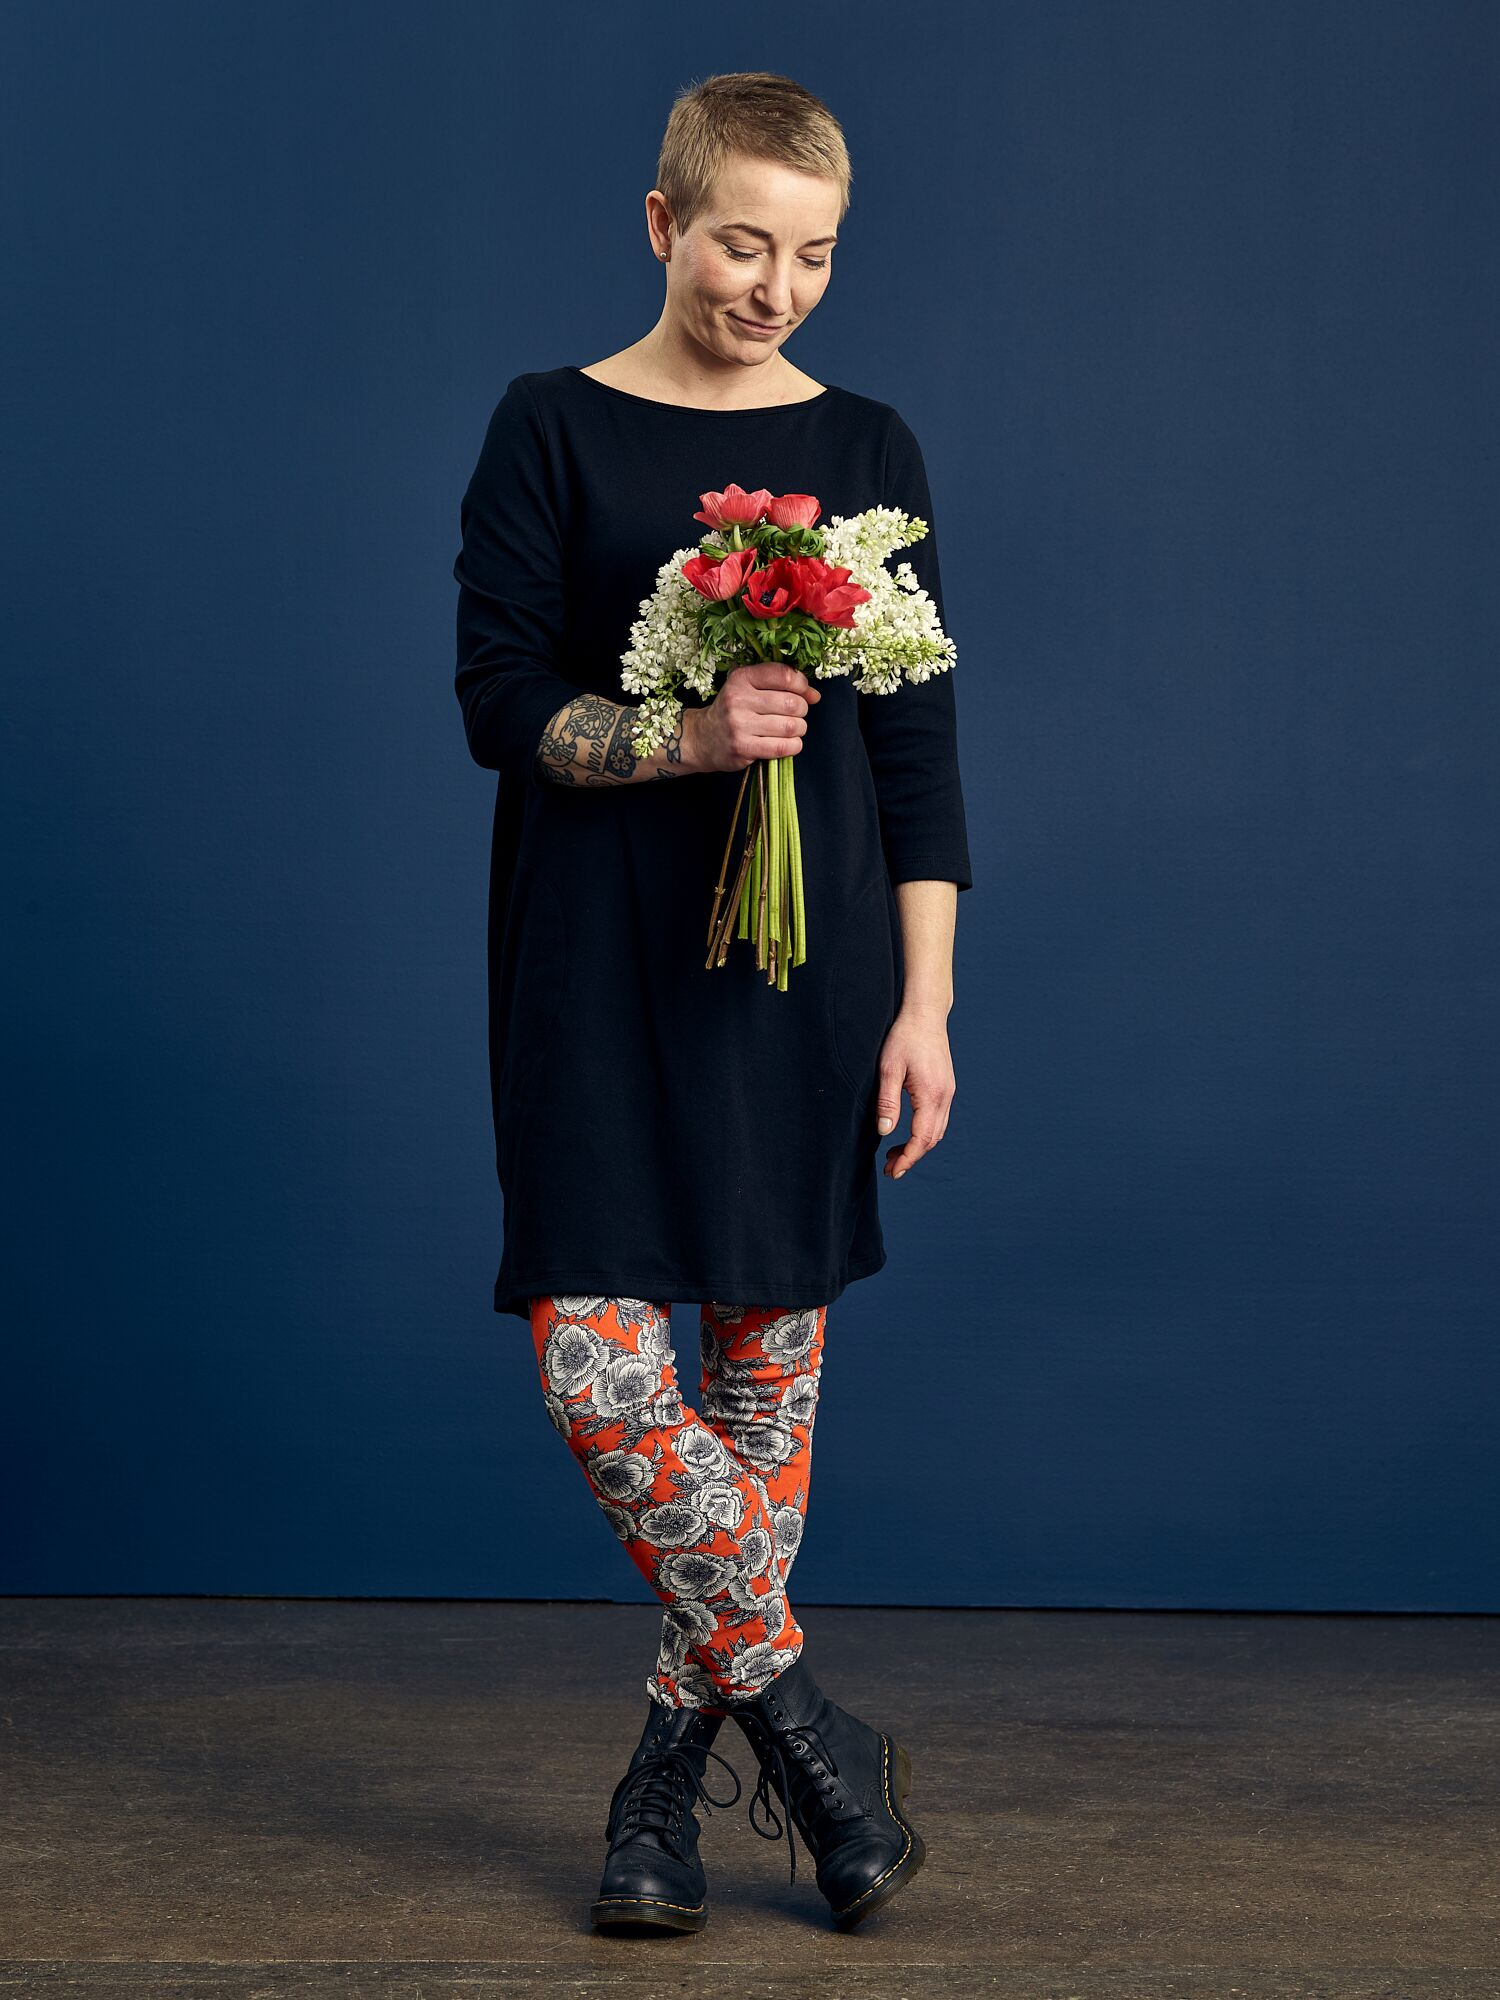 20180203 melli14344 preview - MELLI  KEVÄT 2018 JA NORDIC DESIGNERS POP UP SHOP KAMPISSA!